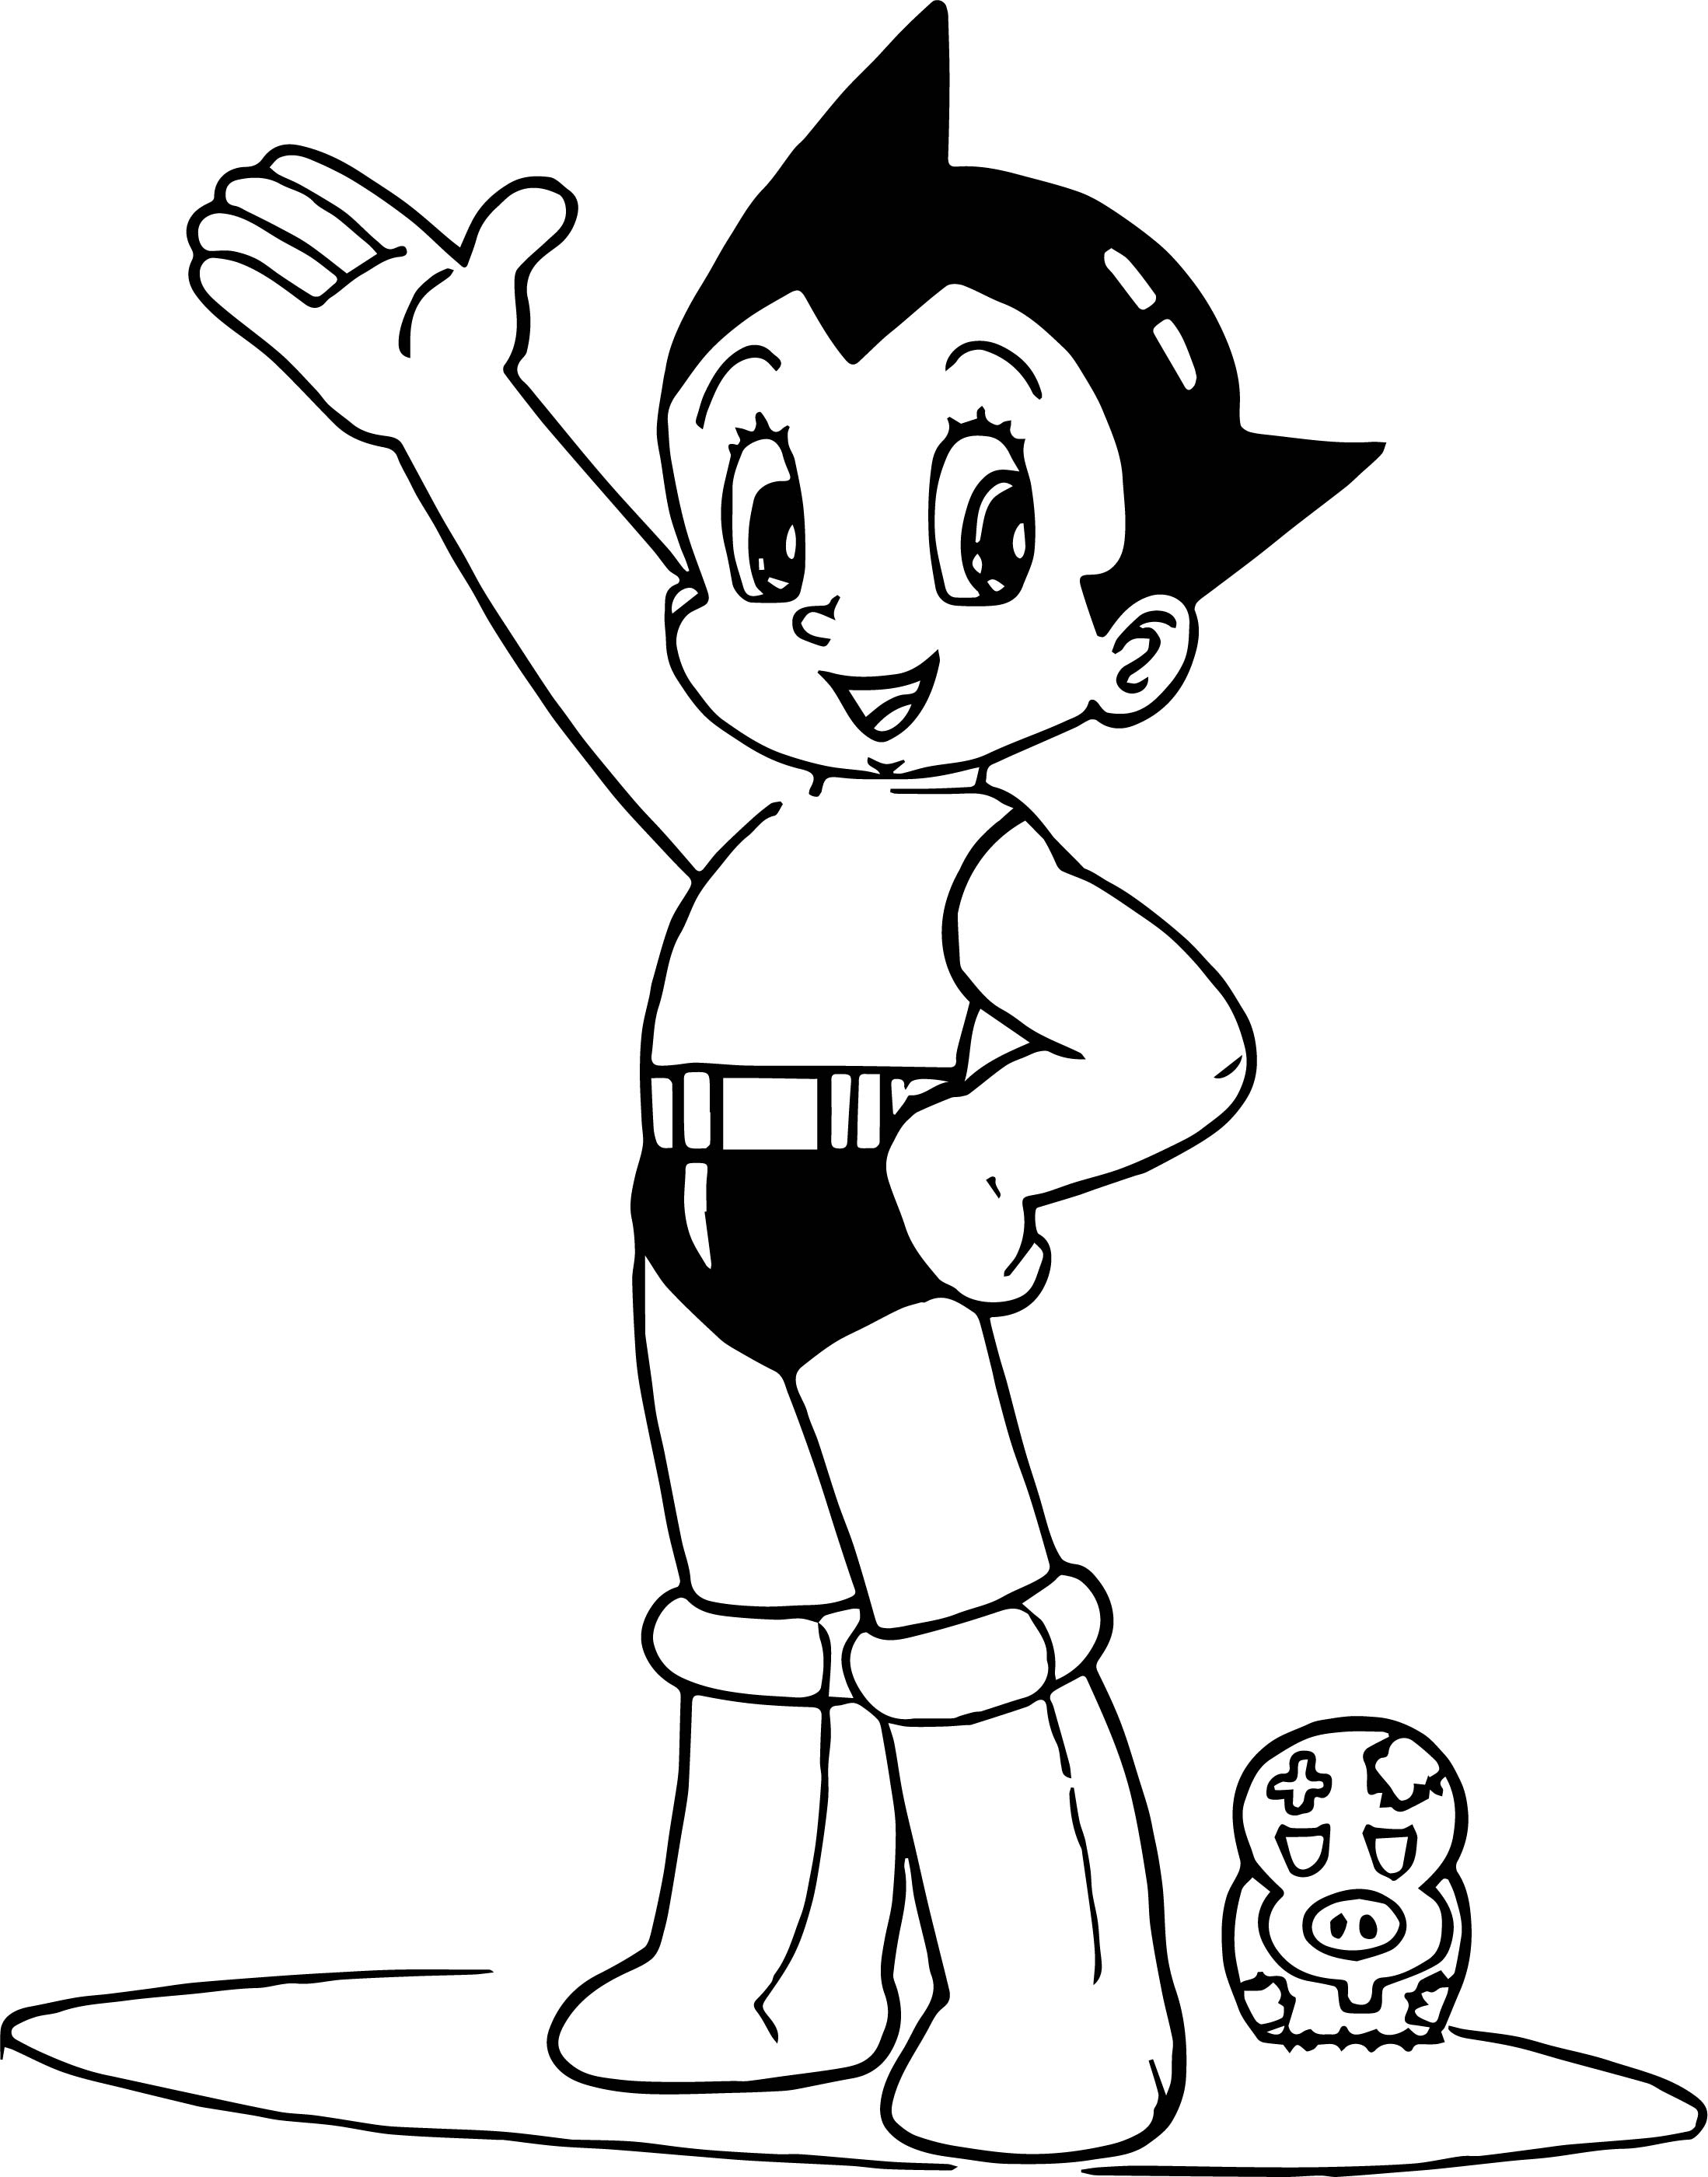 Astro Boy Pig Toy Coloring Page